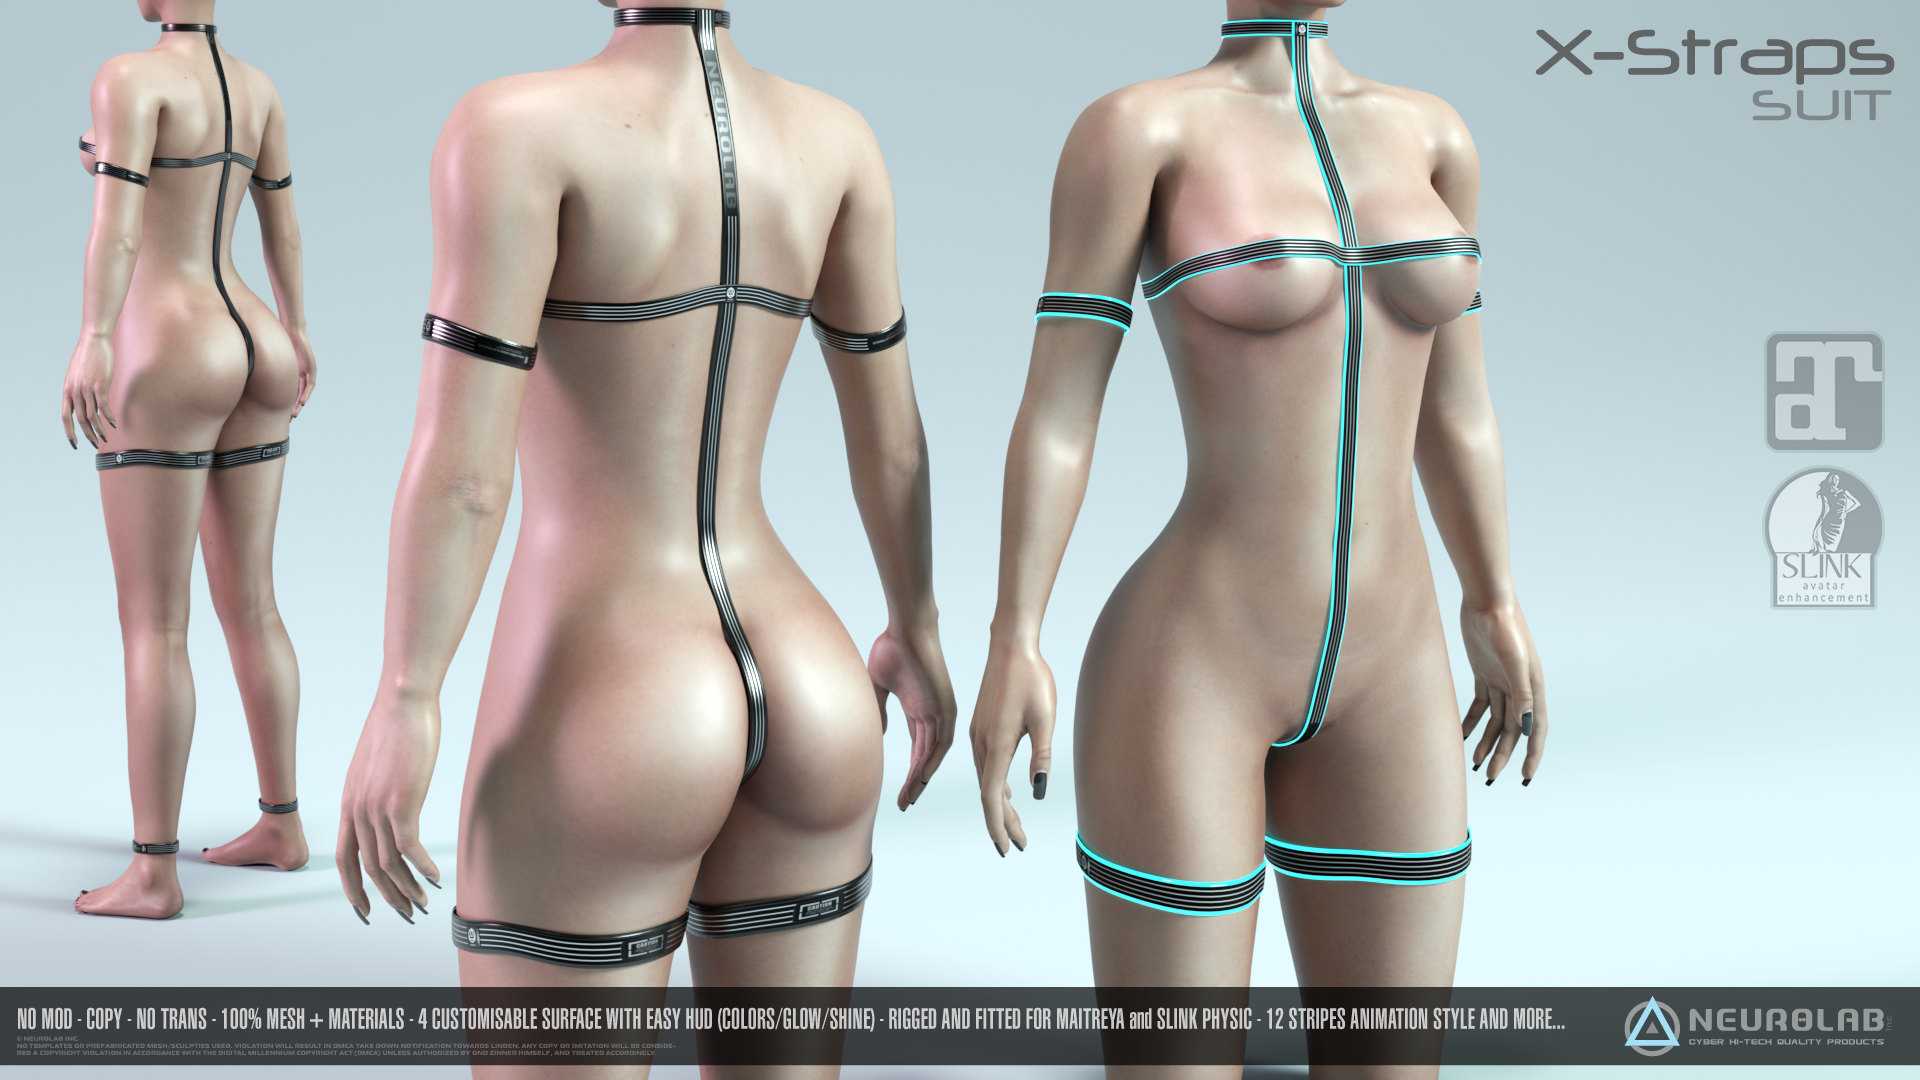 X-Straps Suit (100% MESH Fitted) *NEW*